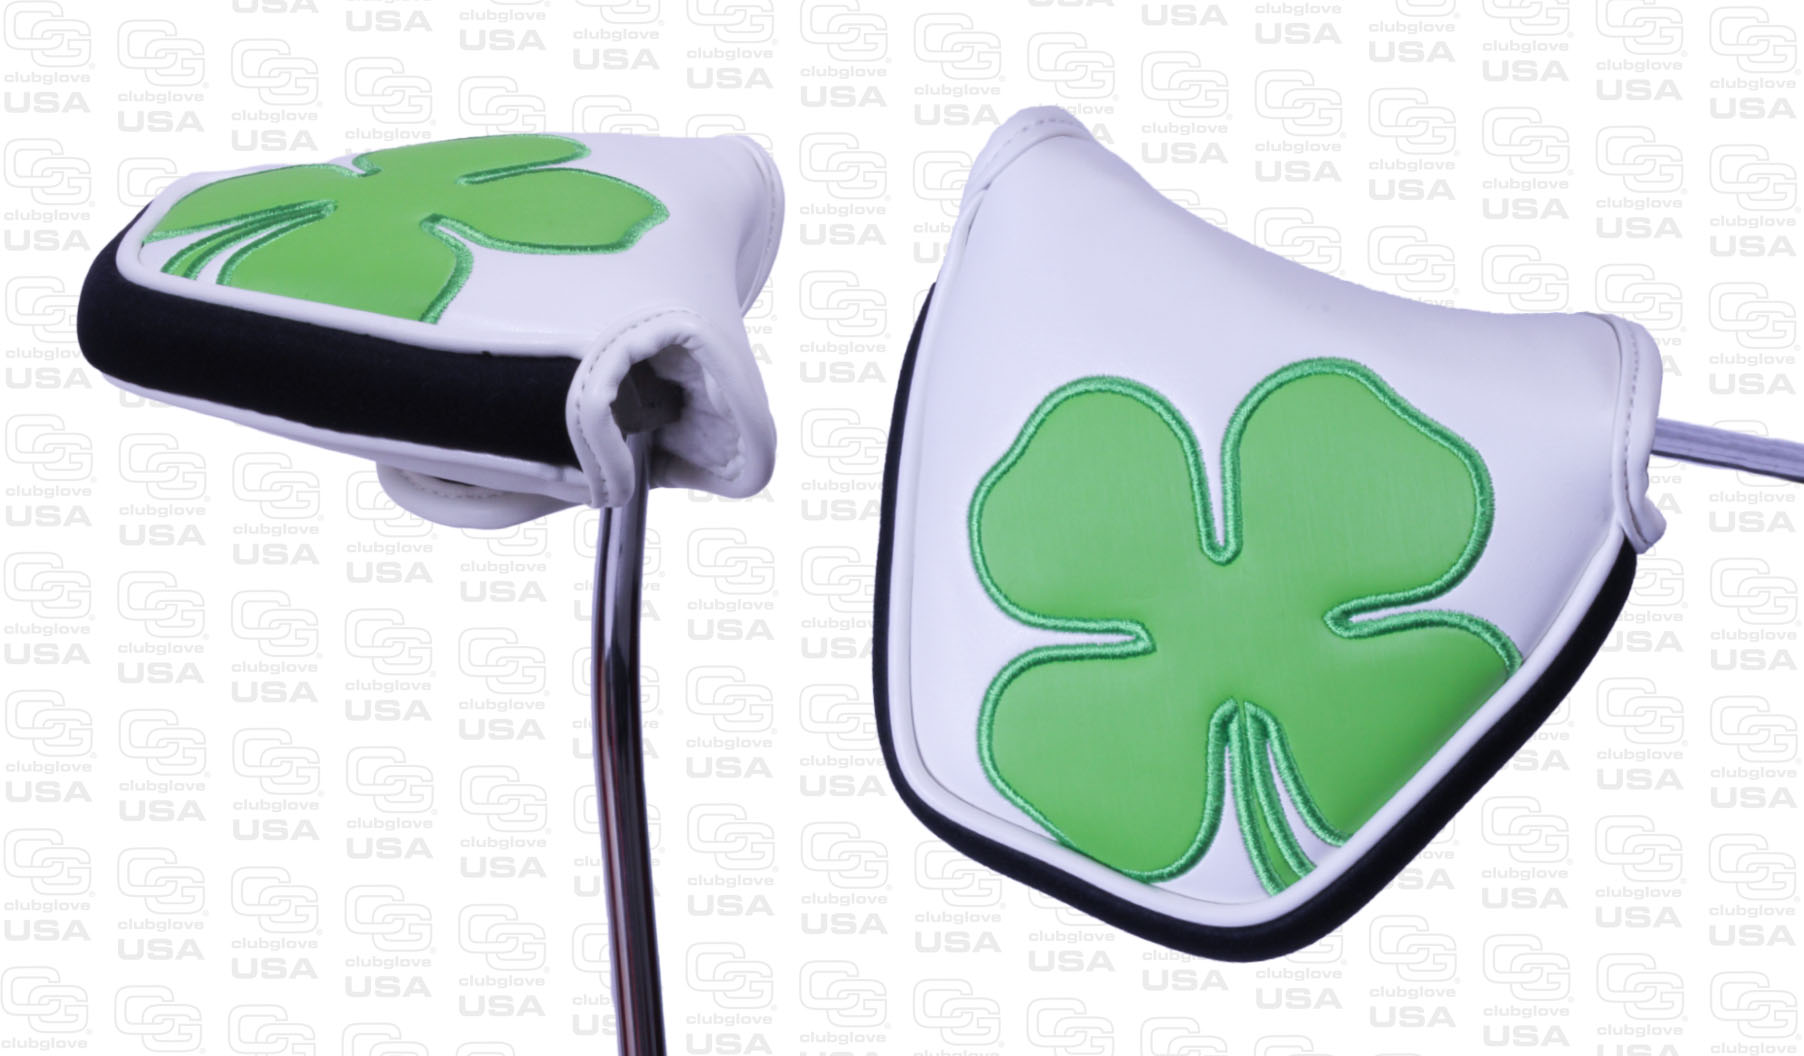 2015 Irish Mallet Putter Covers